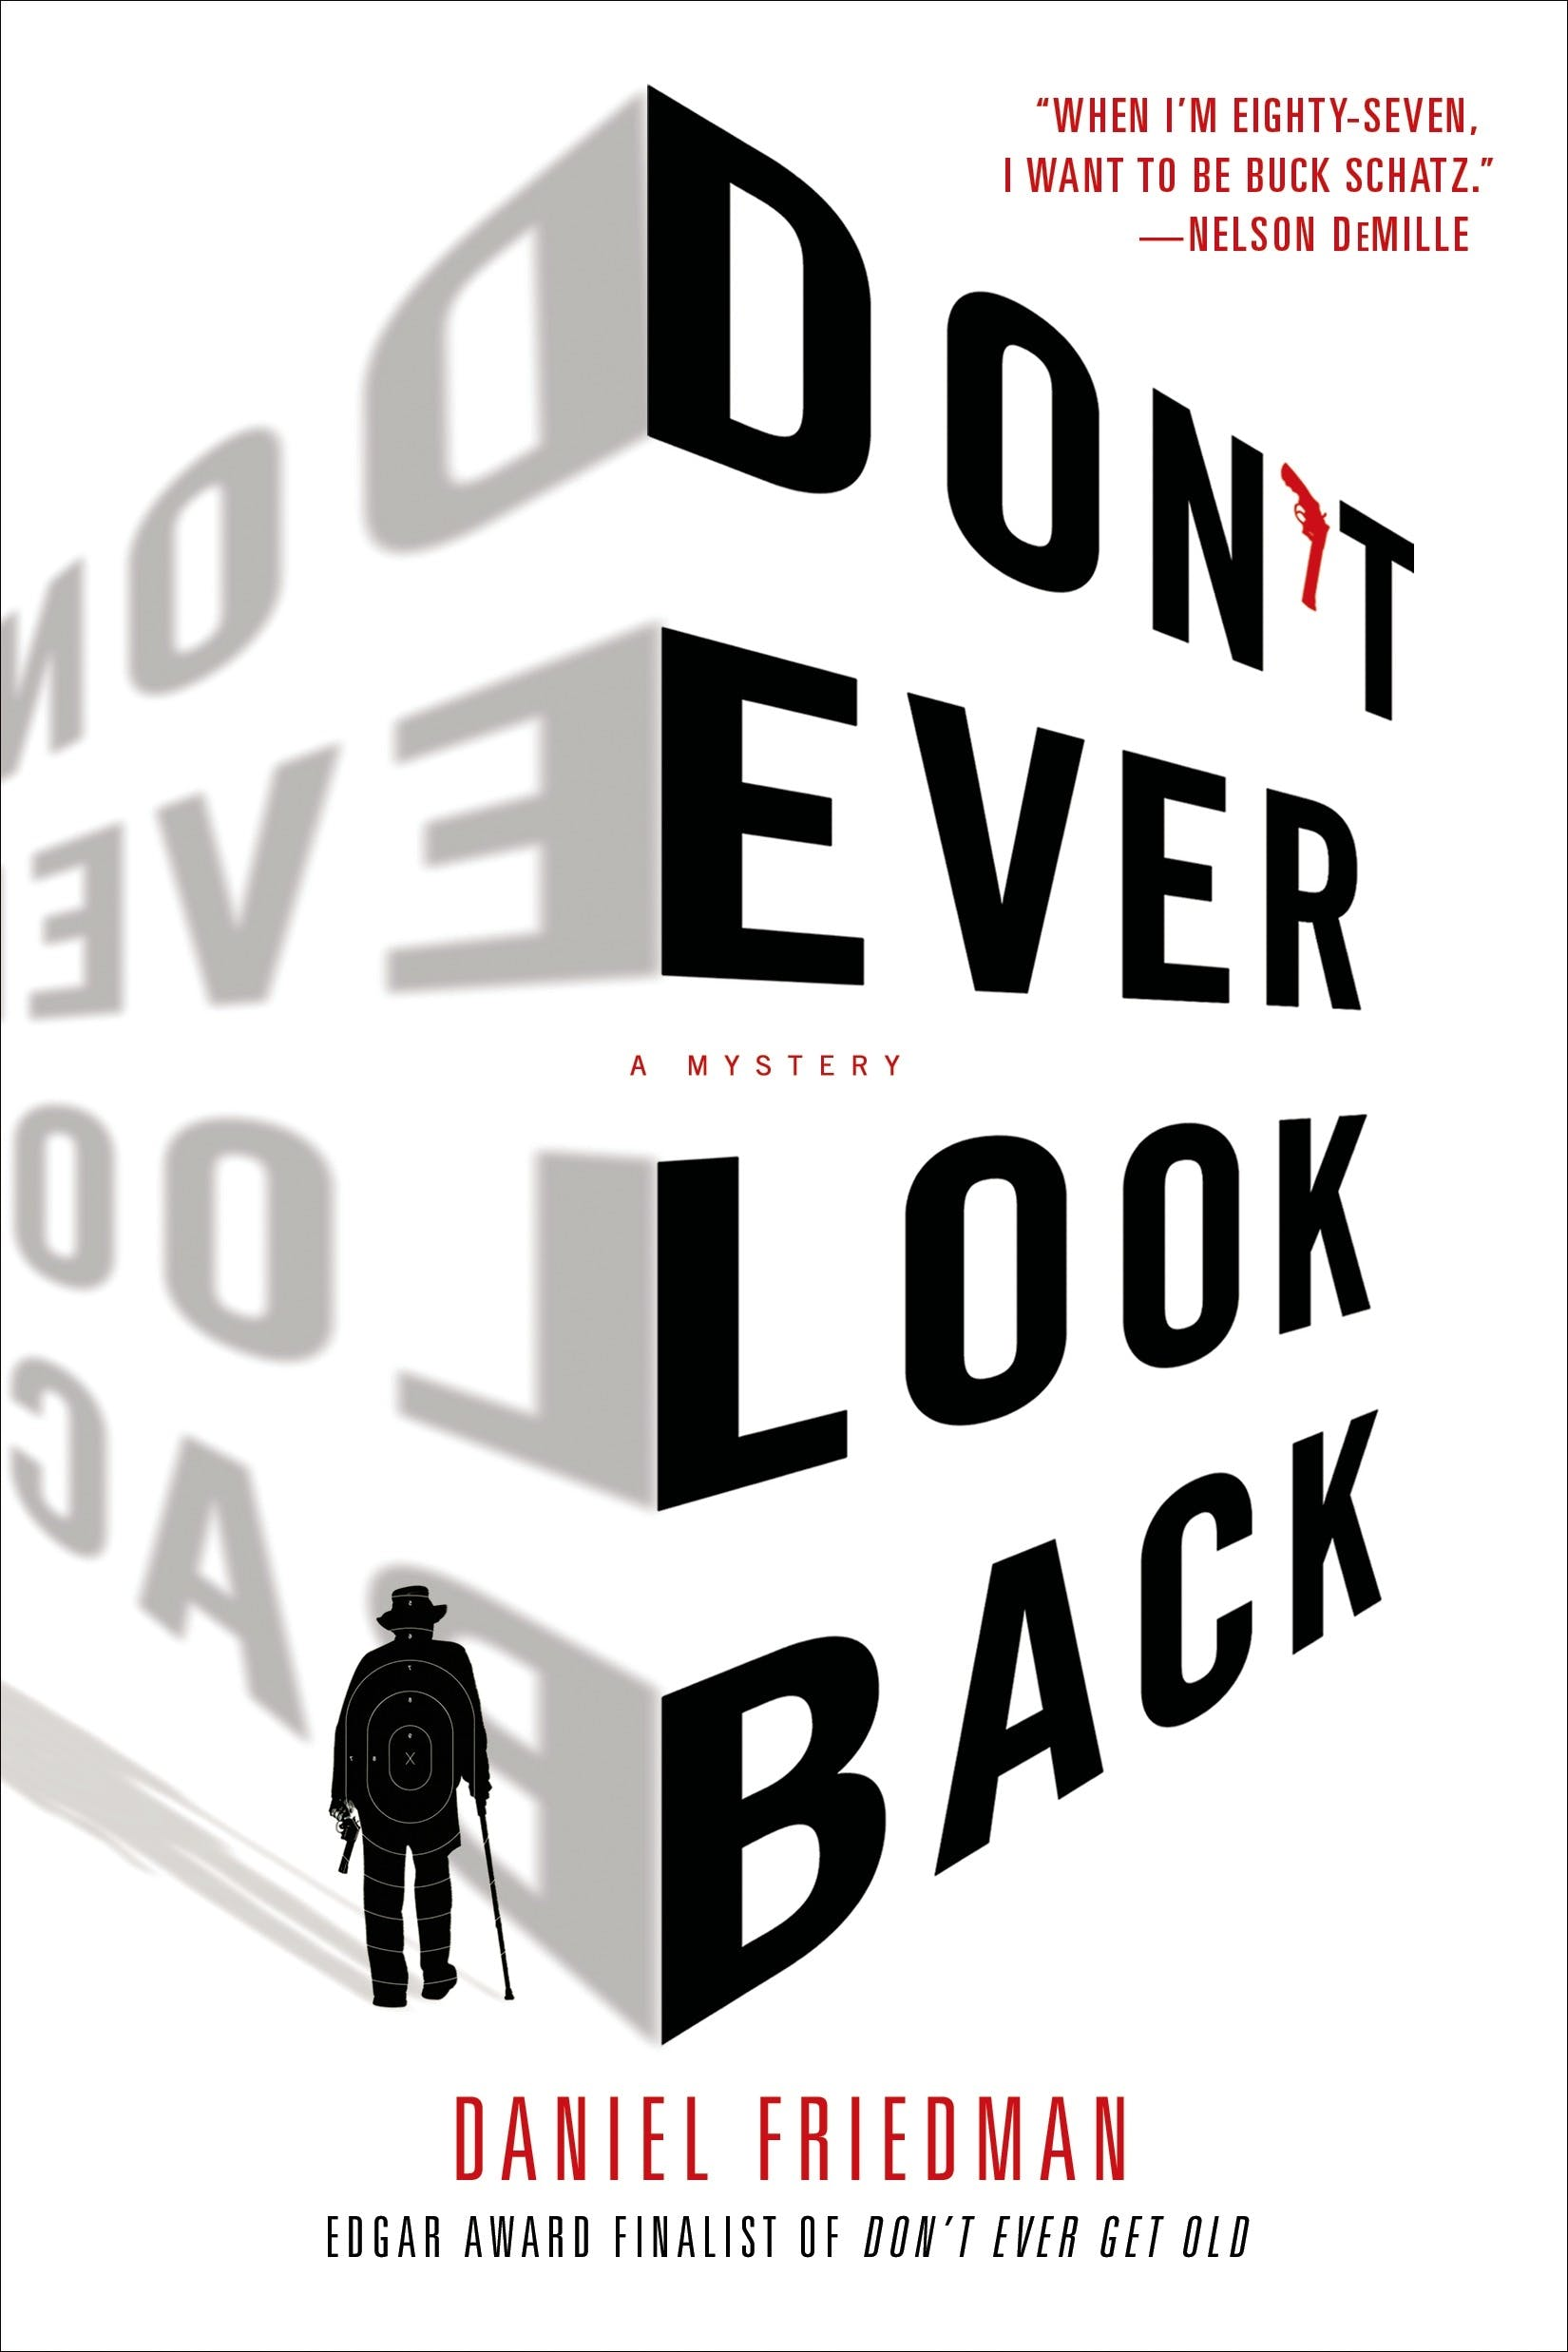 Image of Don't Ever Look Back